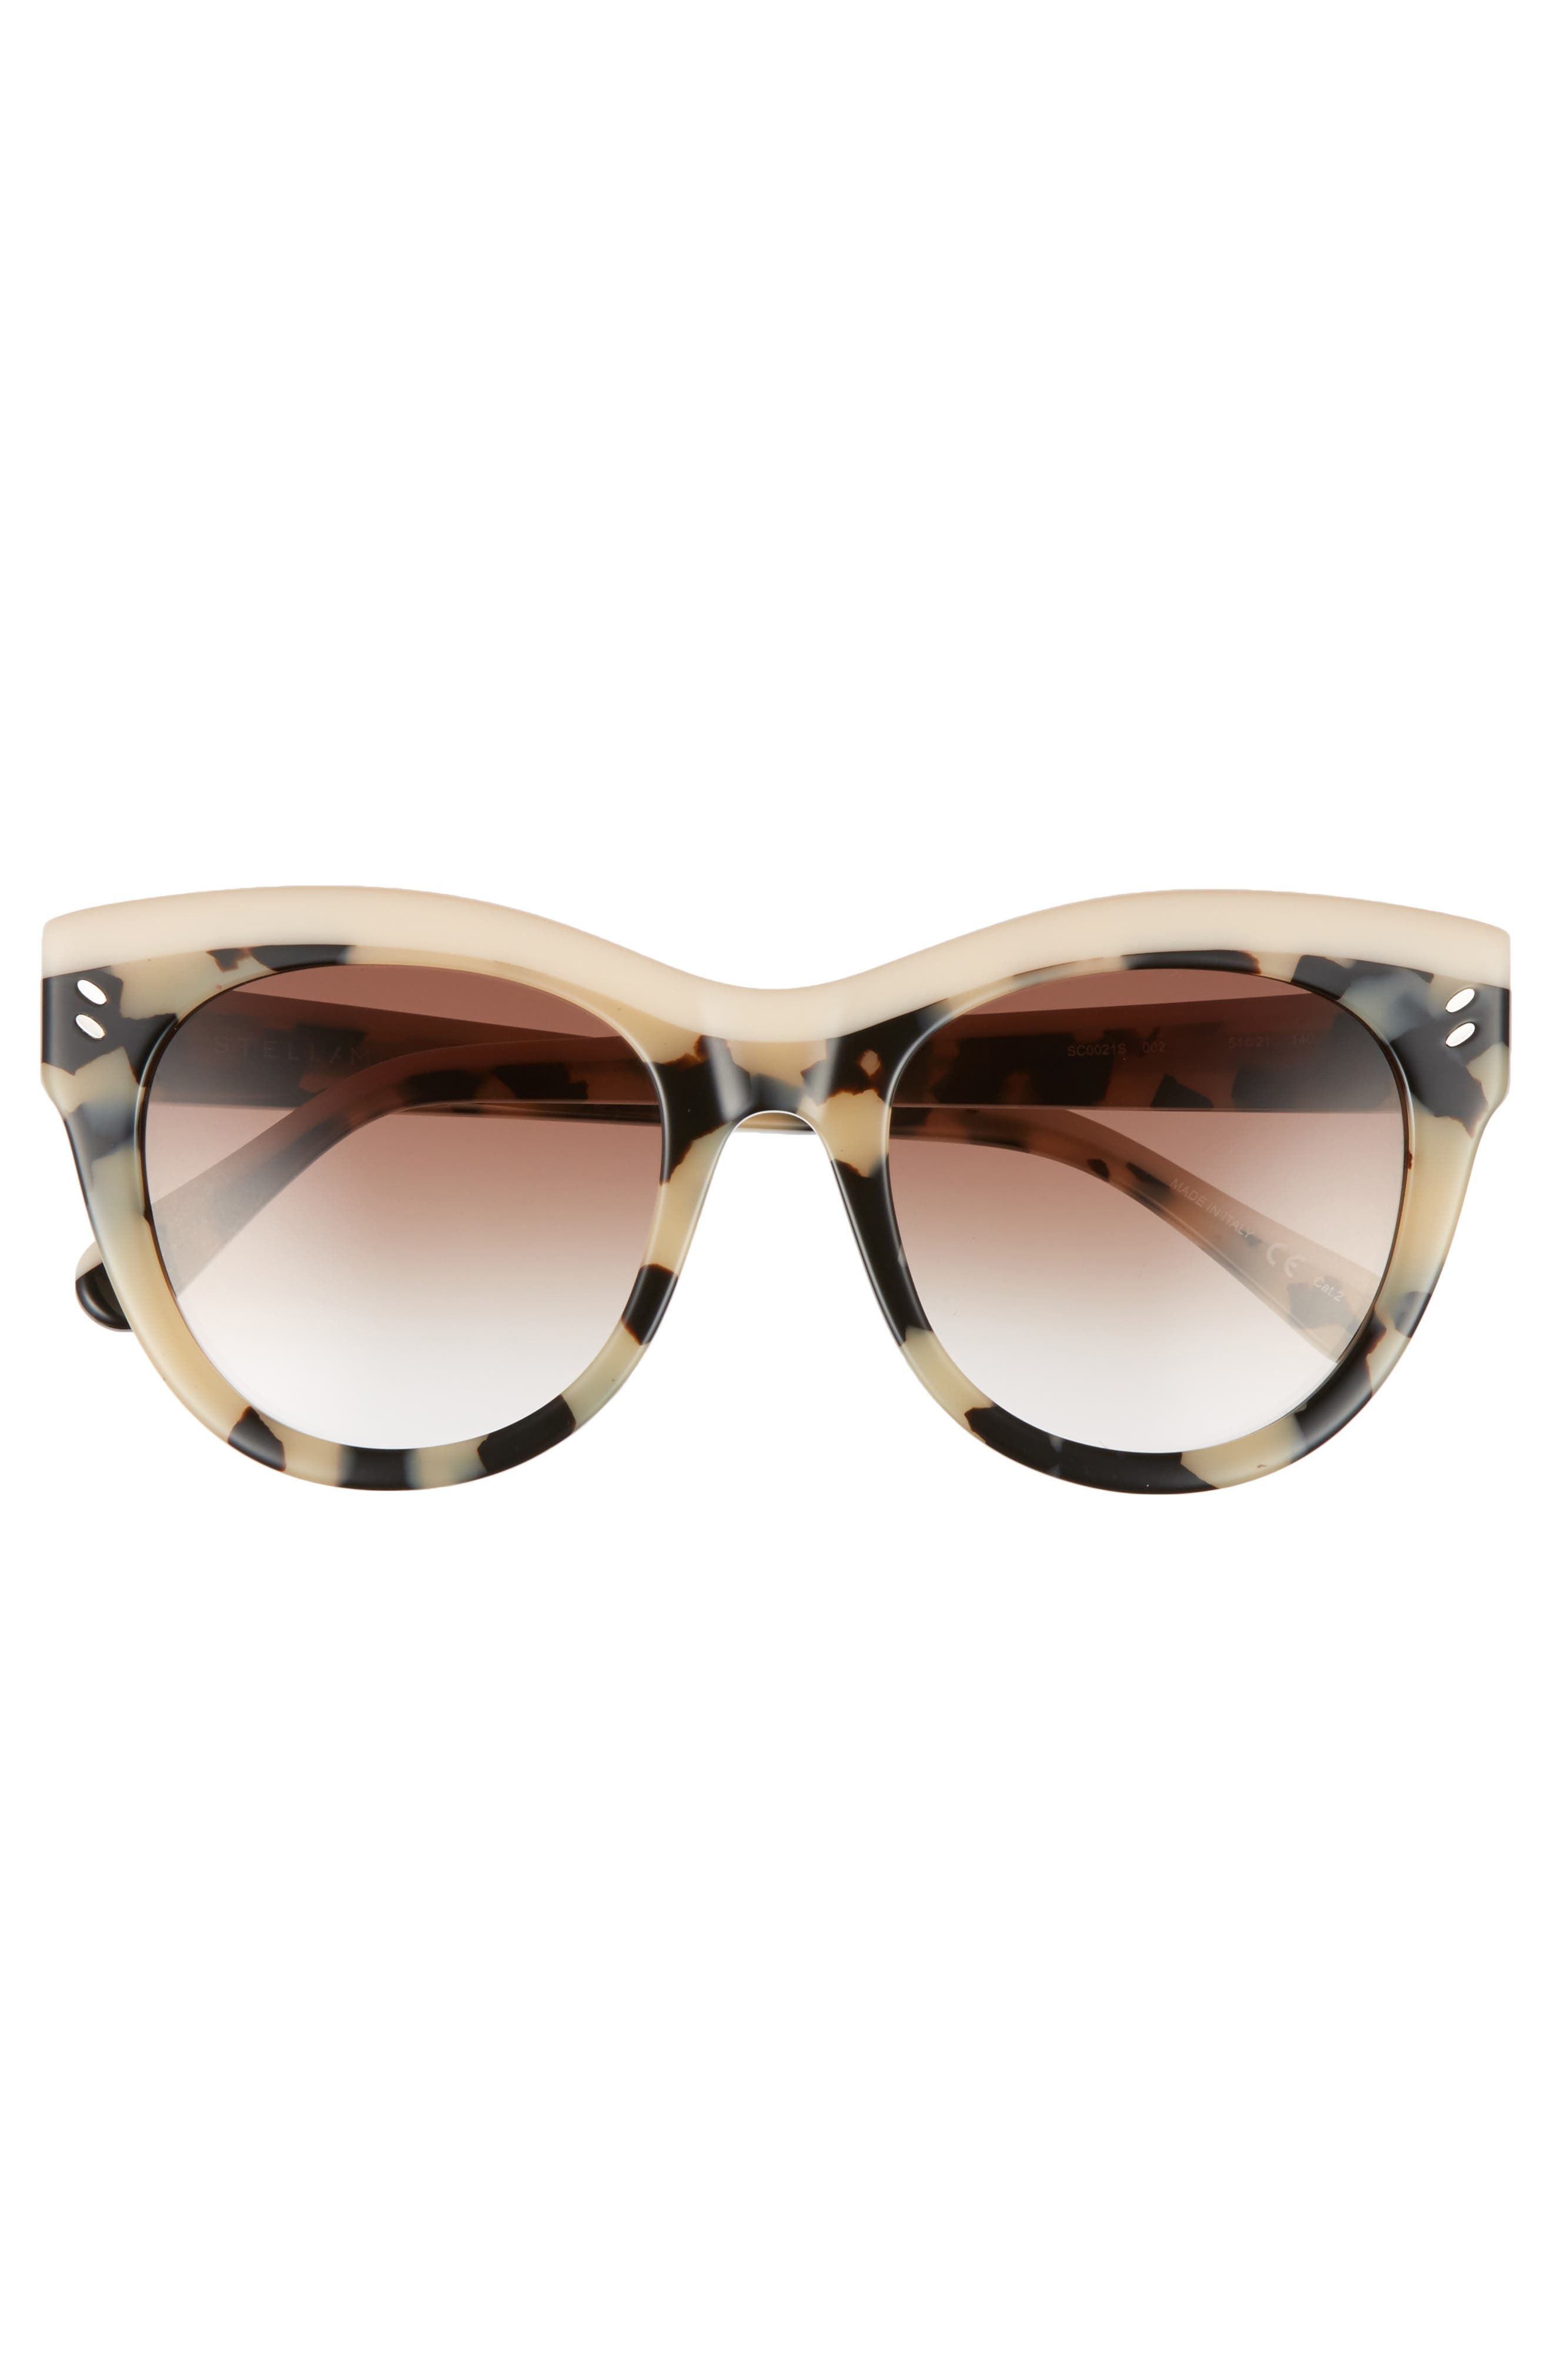 51mm Cat Eye Sunglasses,                             Alternate thumbnail 8, color,